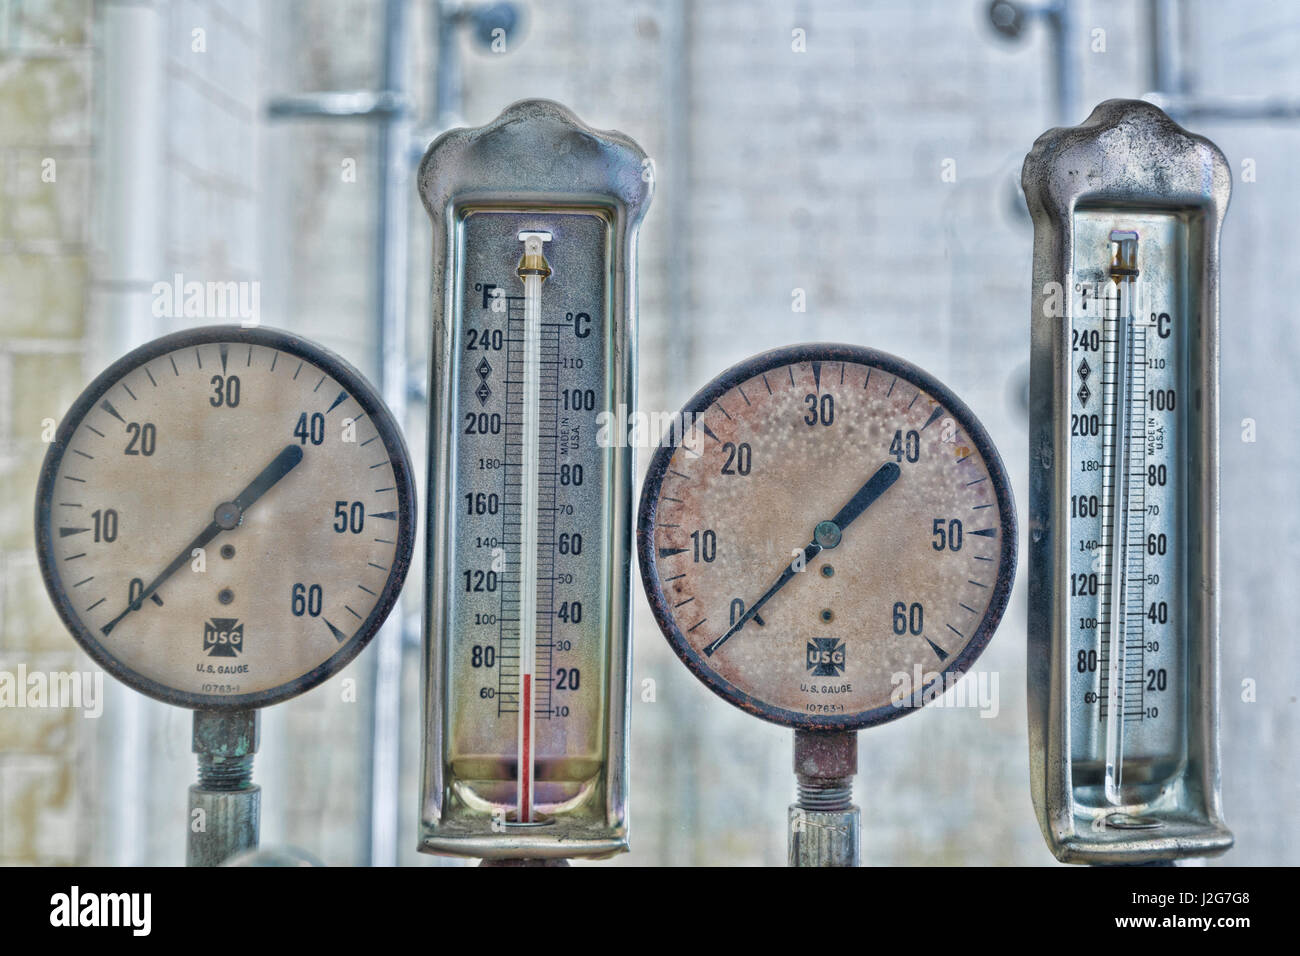 USA, Arkansas, Hot Springs. Plumbing gauges at Fordyce Bath House ...